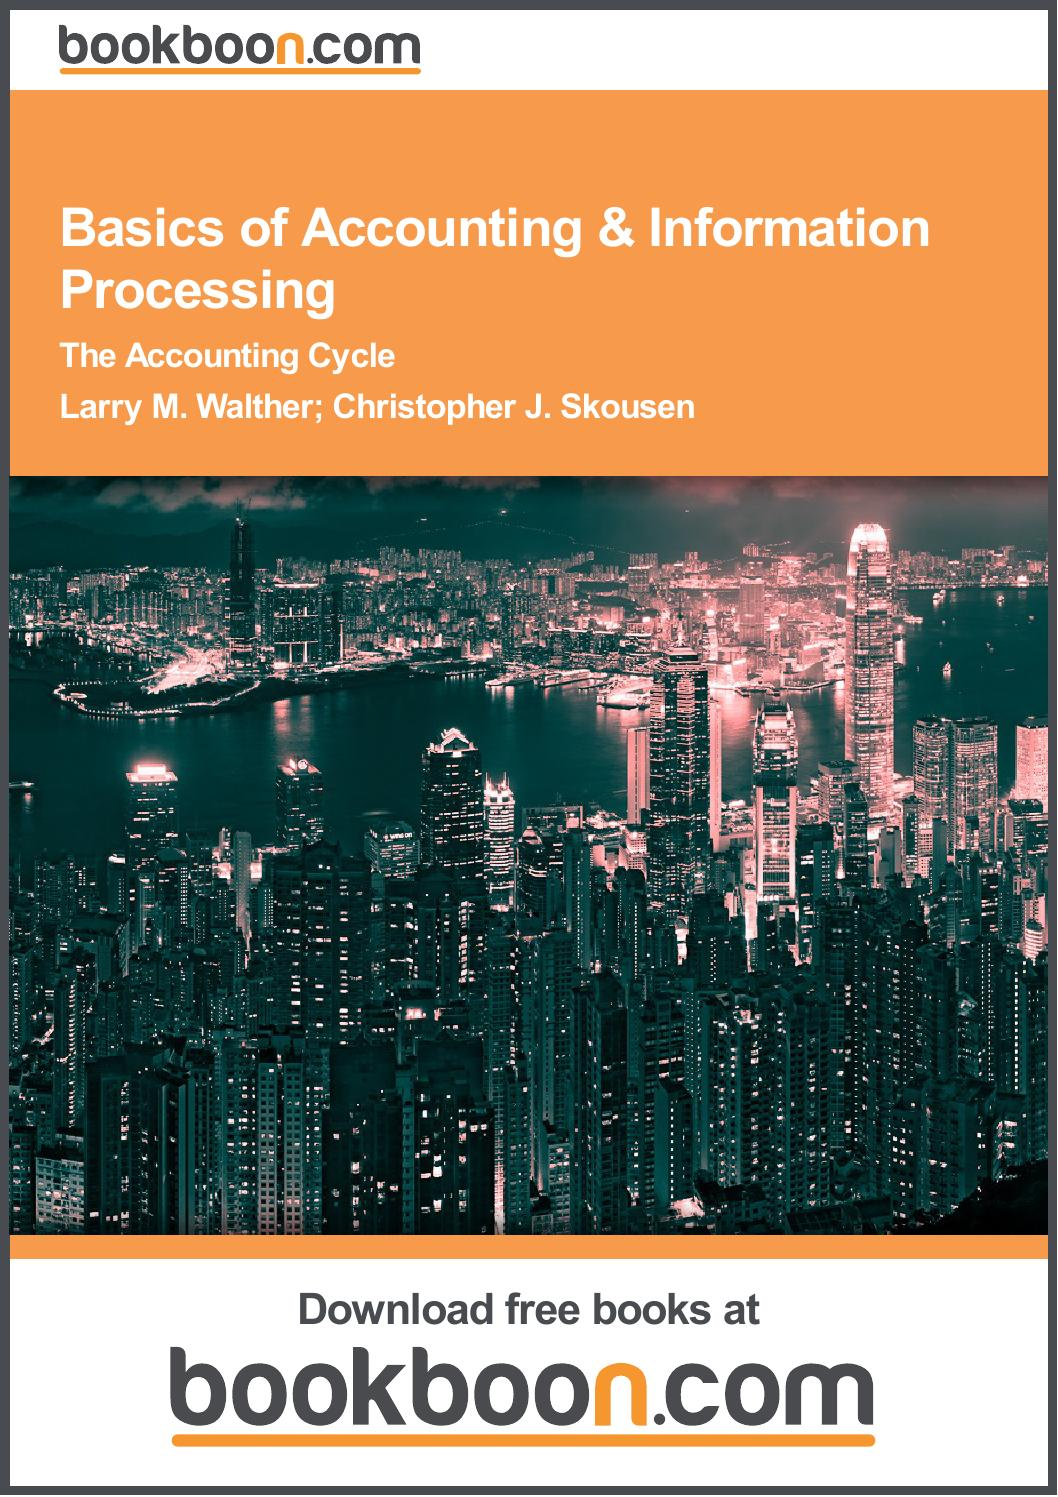 the significance of accounting information in measuring related liability This study will also attach importance to measure the accounting information systems effectiveness referring to the role of the ais in decision-making support, control and operations among all the firms activities.